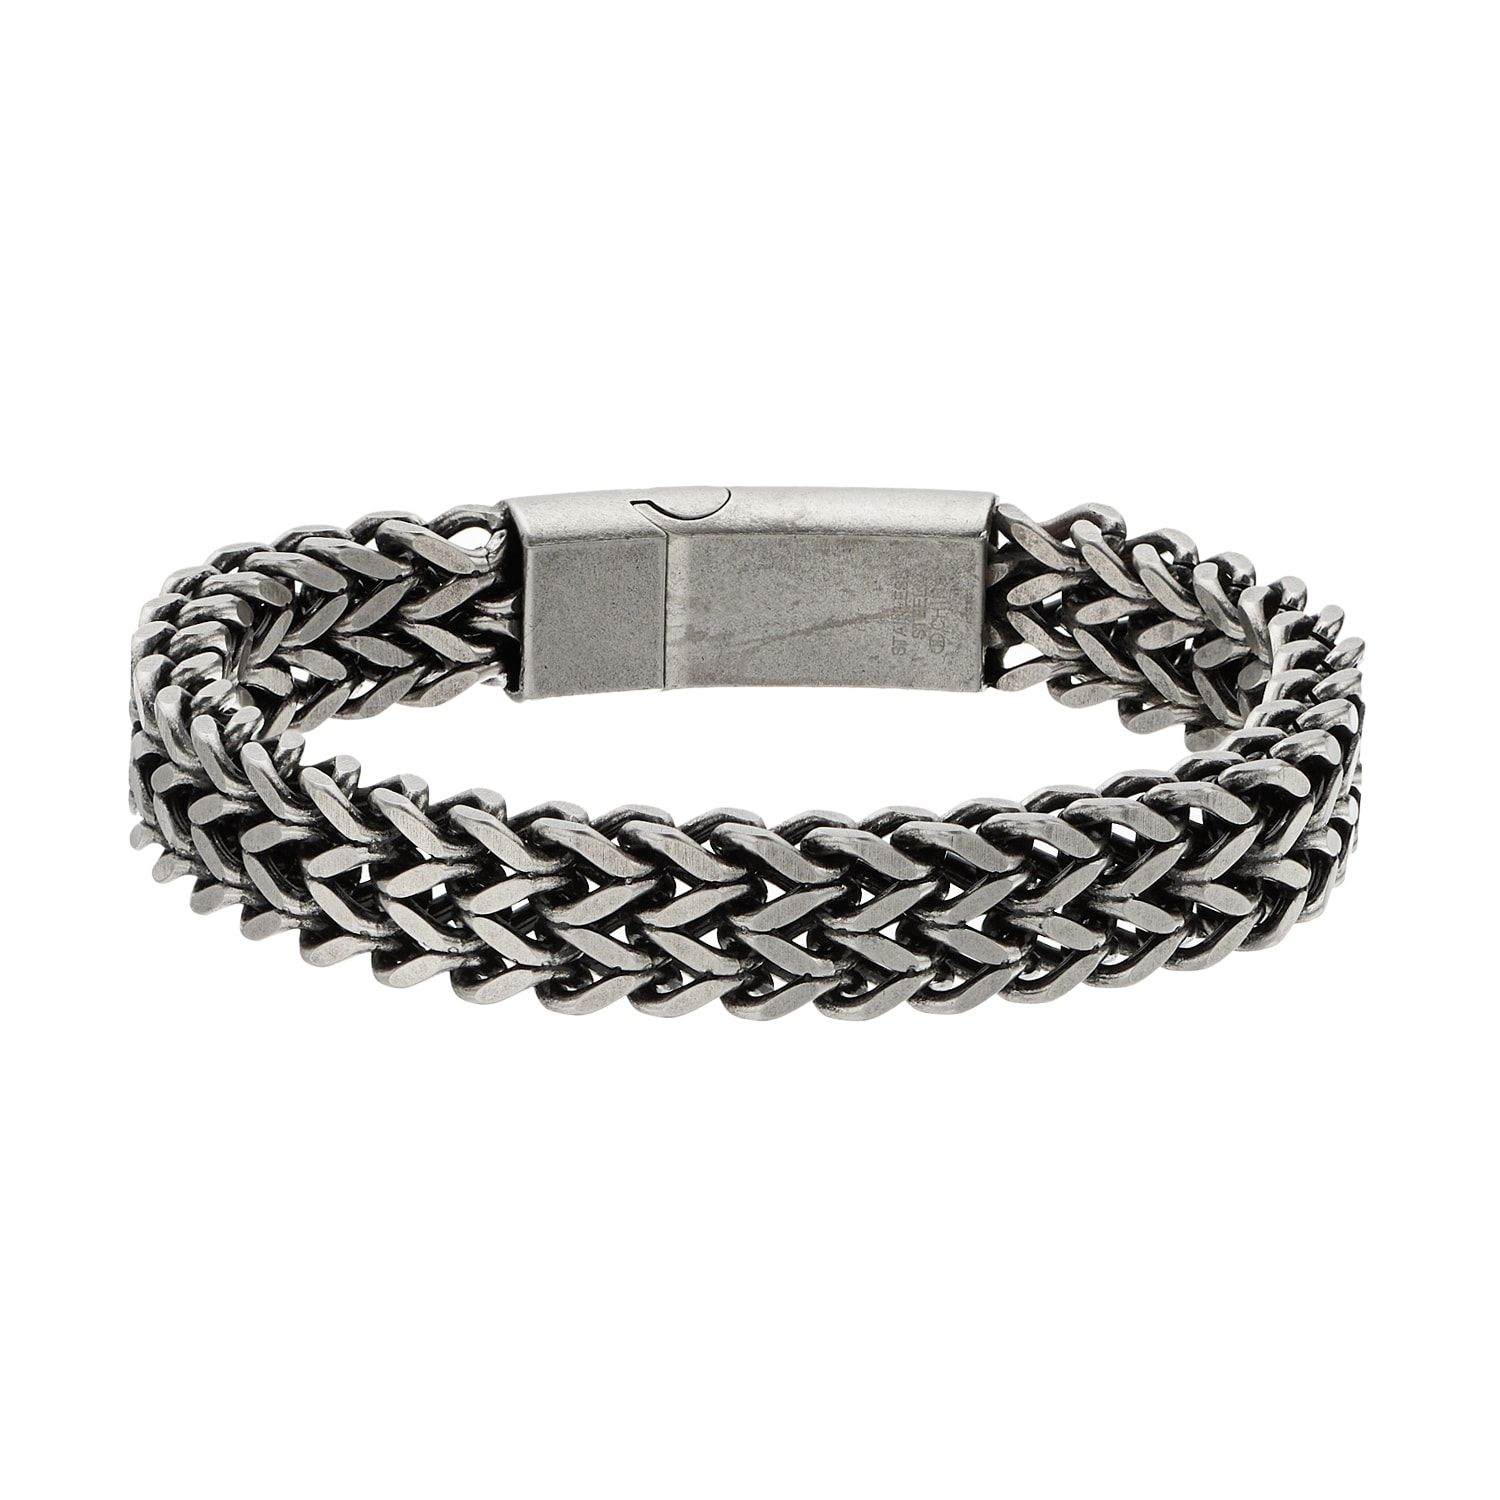 1913 Men S Stainless Steel Woven Bracelet Stainless Men Bracelet Woven Woven Bracelets Bracelets Mens Jewelry